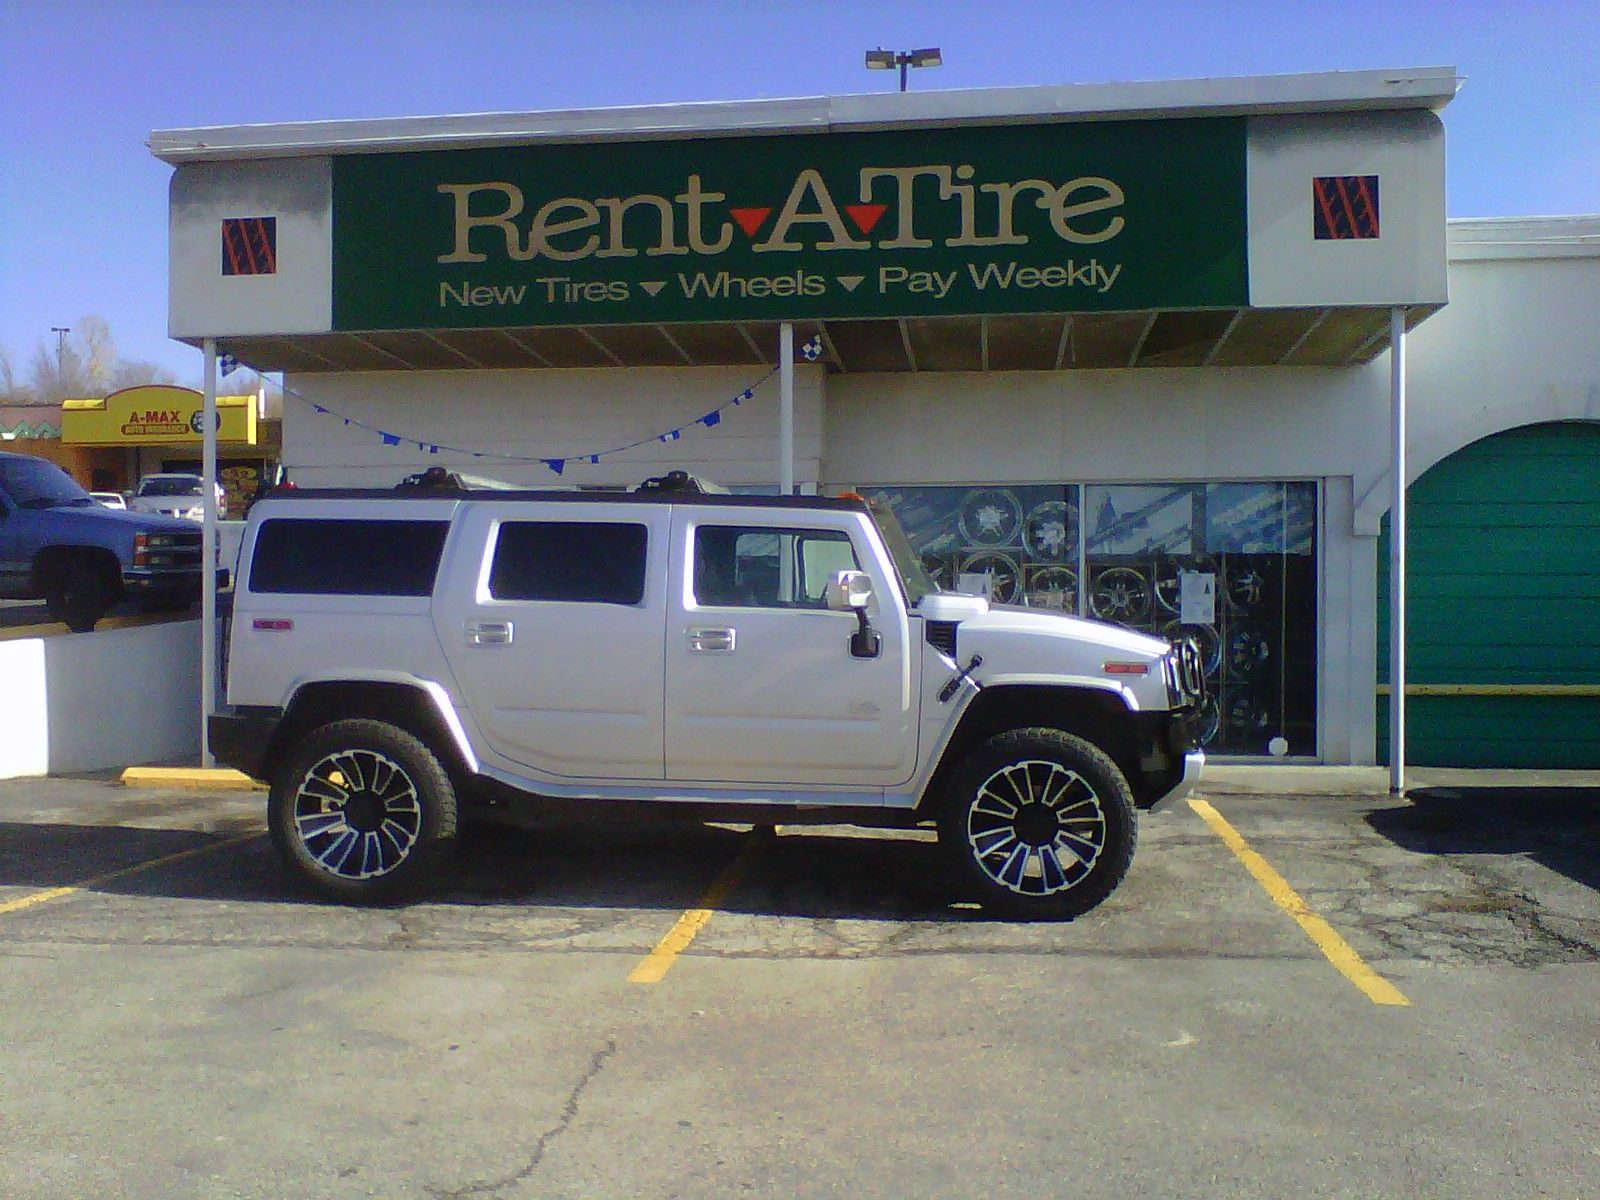 Check Out This Hummer On 22 Ion 180 Wheels With 325 50 22 Falken Wild Peaks Tires Sweet Ride New Tyres Hummer